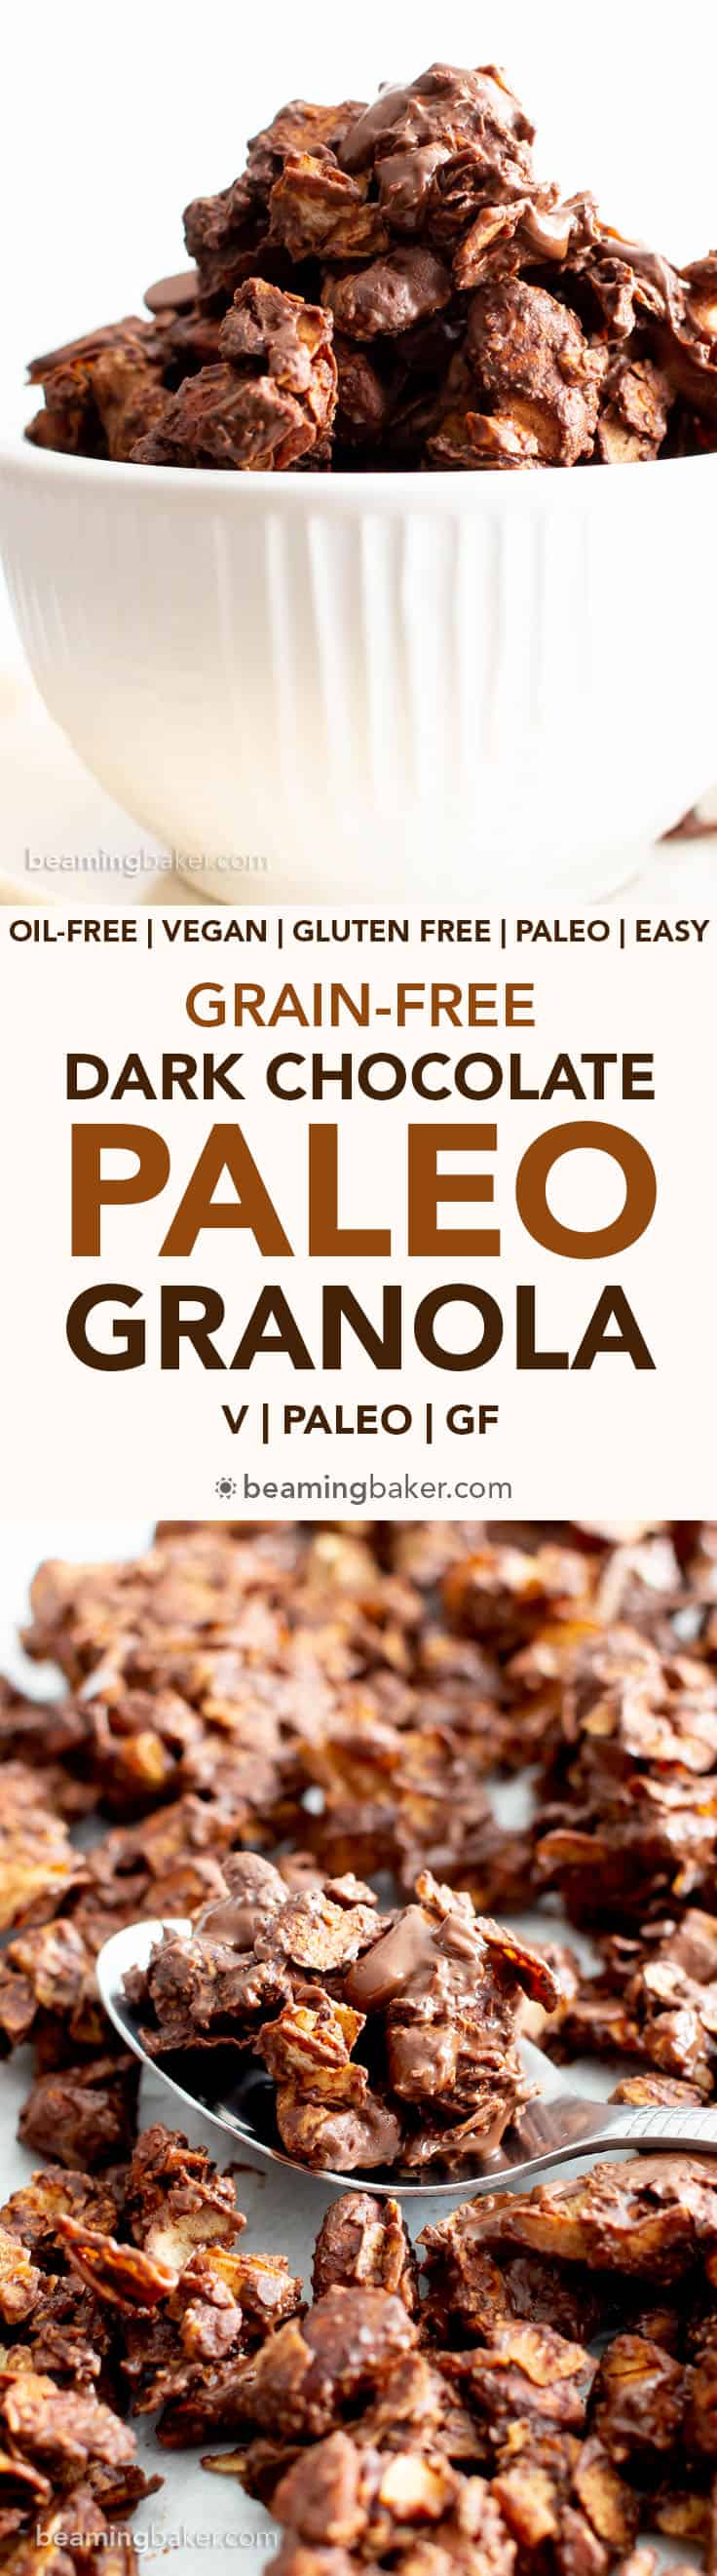 Dark Chocolate Paleo Grain Free Granola Recipe (V, GF): an easy recipe for the best homemade grain free granola with chunky clusters, and bursting with rich dark chocolate! #PaleoVegan #PaleoSnacks #HealthySnacks #BeamingBaker #HomemadeGranola #GlutenFreeVegan #DairyFree | Recipe at BeamingBaker.com